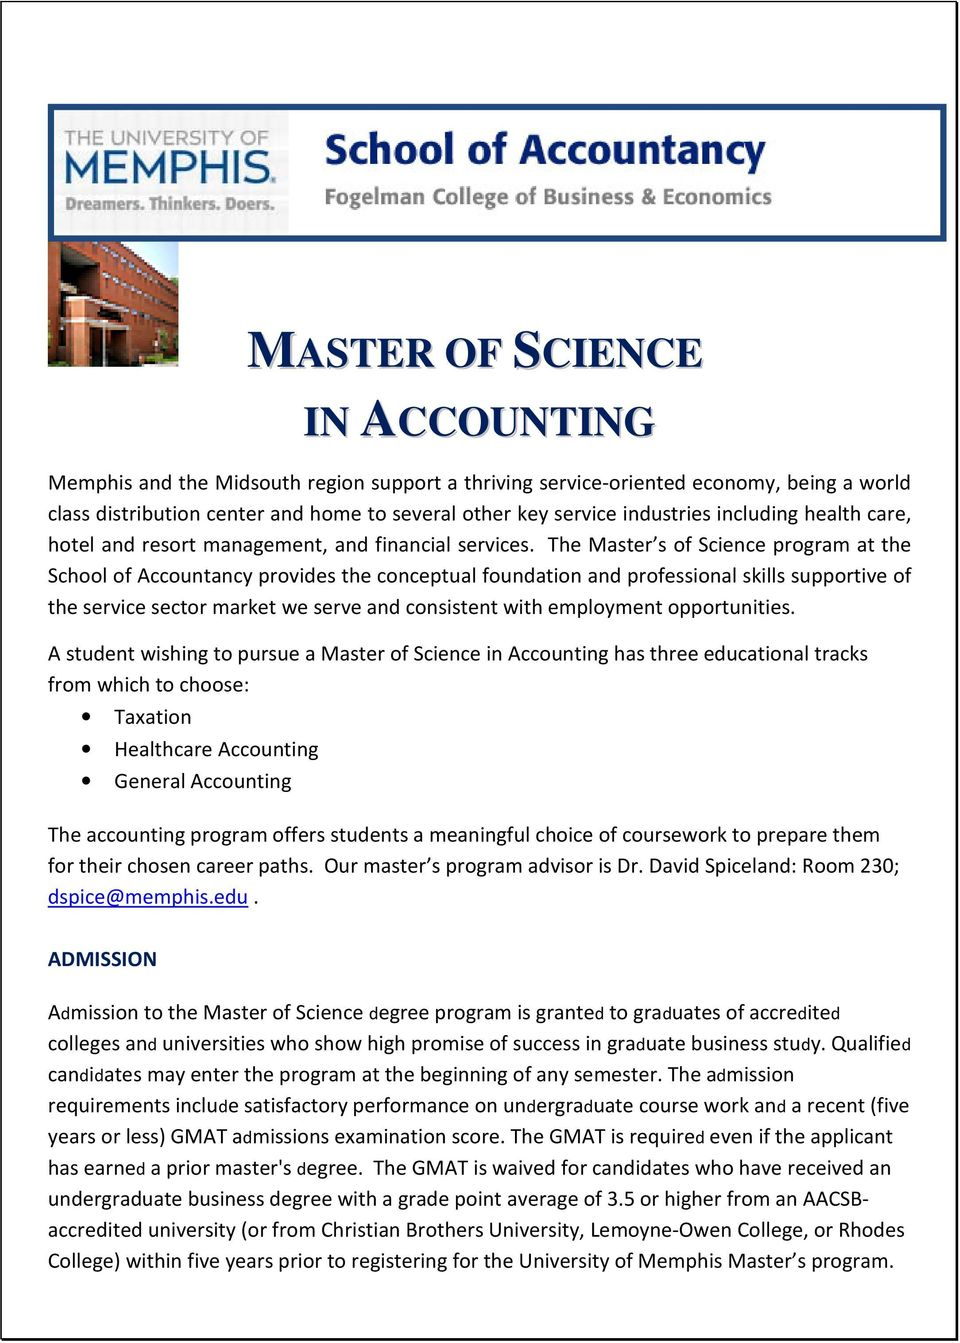 The Master s of Science program at the School of Accountancy provides the conceptual foundation and professional skills supportive of the service sector market we serve and consistent with employment